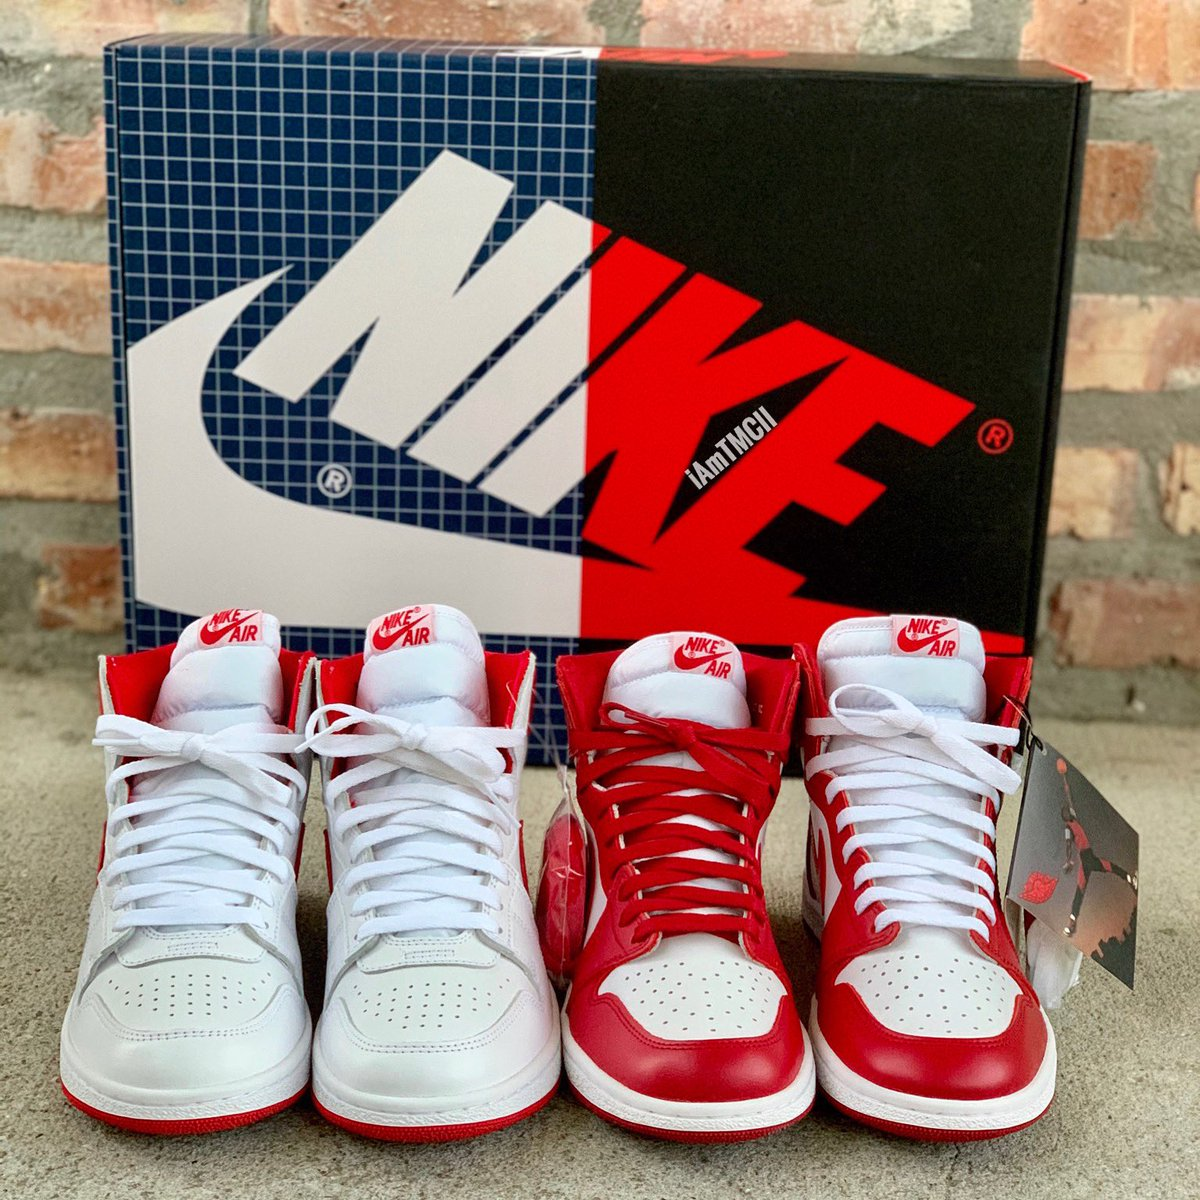 Honest opinions on this pack the the release?<br>http://pic.twitter.com/OqedjxI6K9